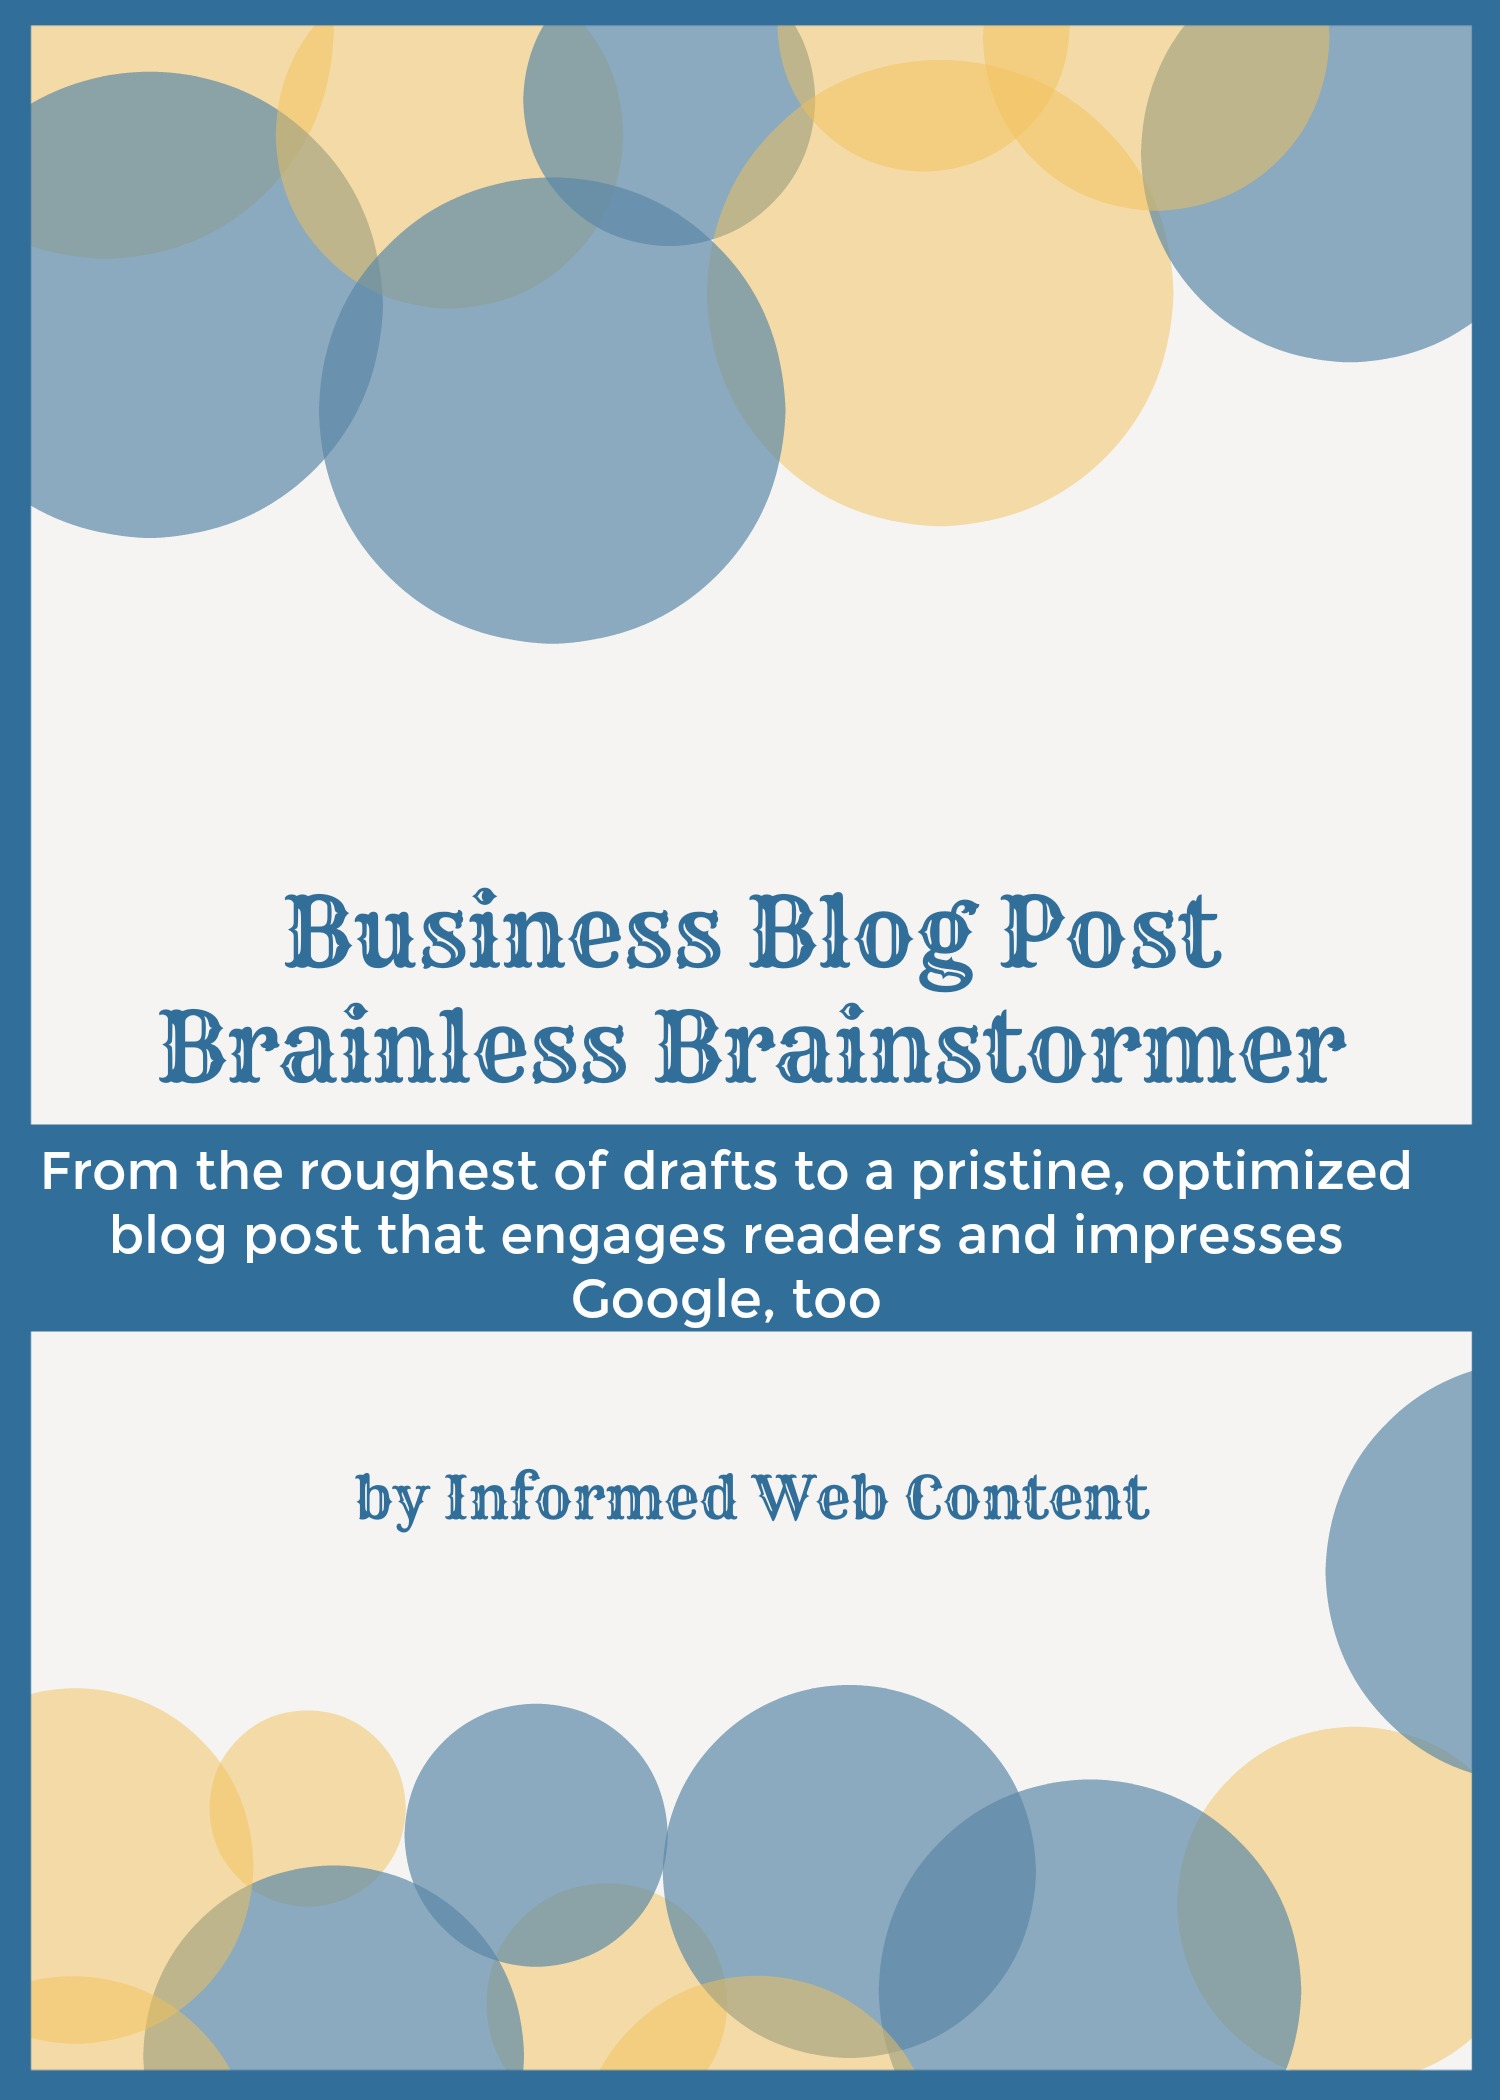 Brainstorm a Small Business Blog Post